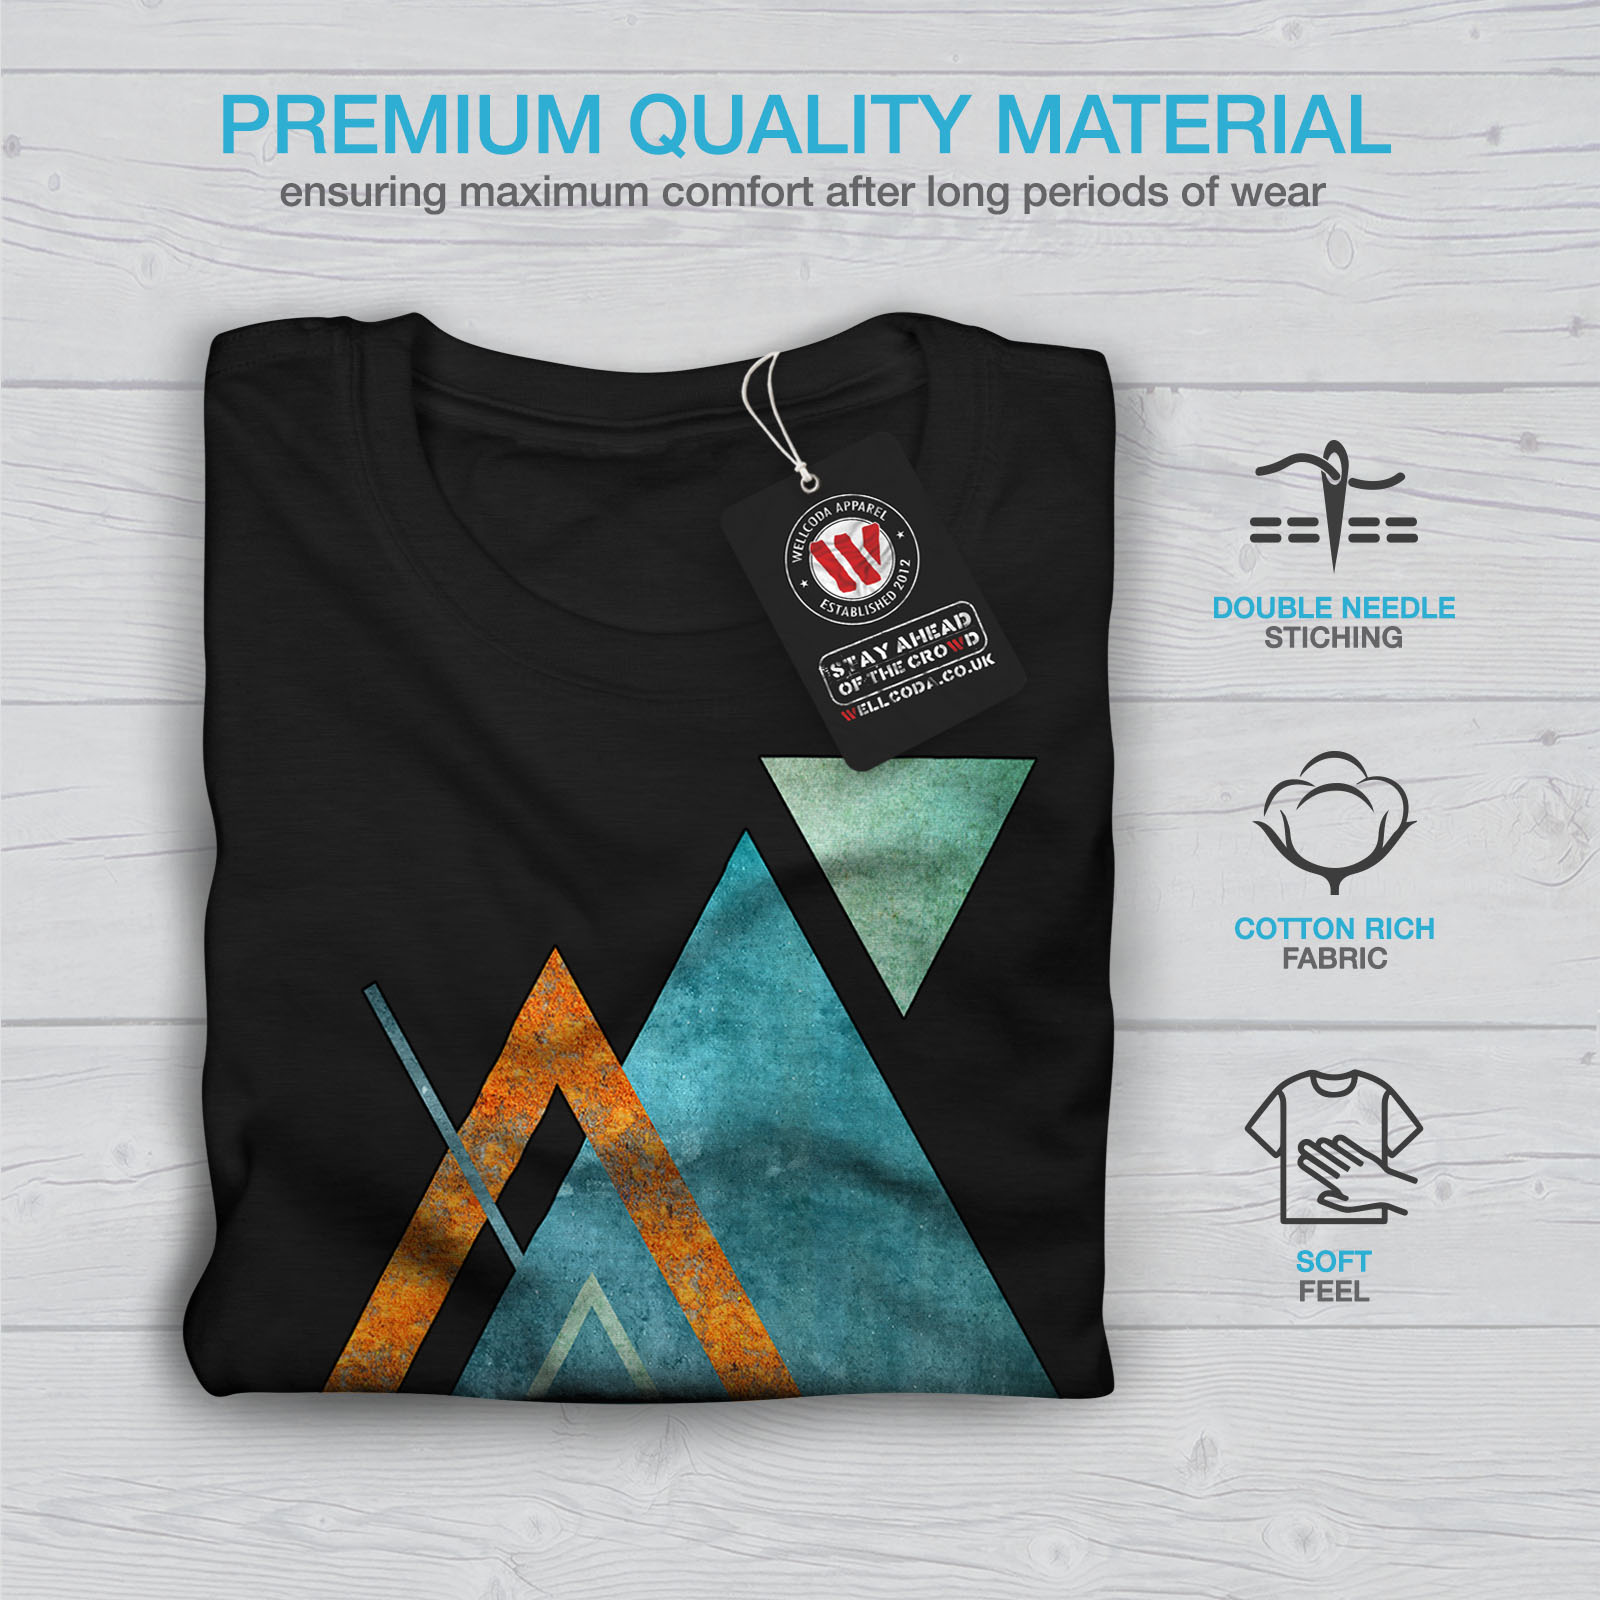 Wellcoda-Abstract-Triangle-T-shirt-homme-forme-design-graphique-imprime-Tee miniature 7